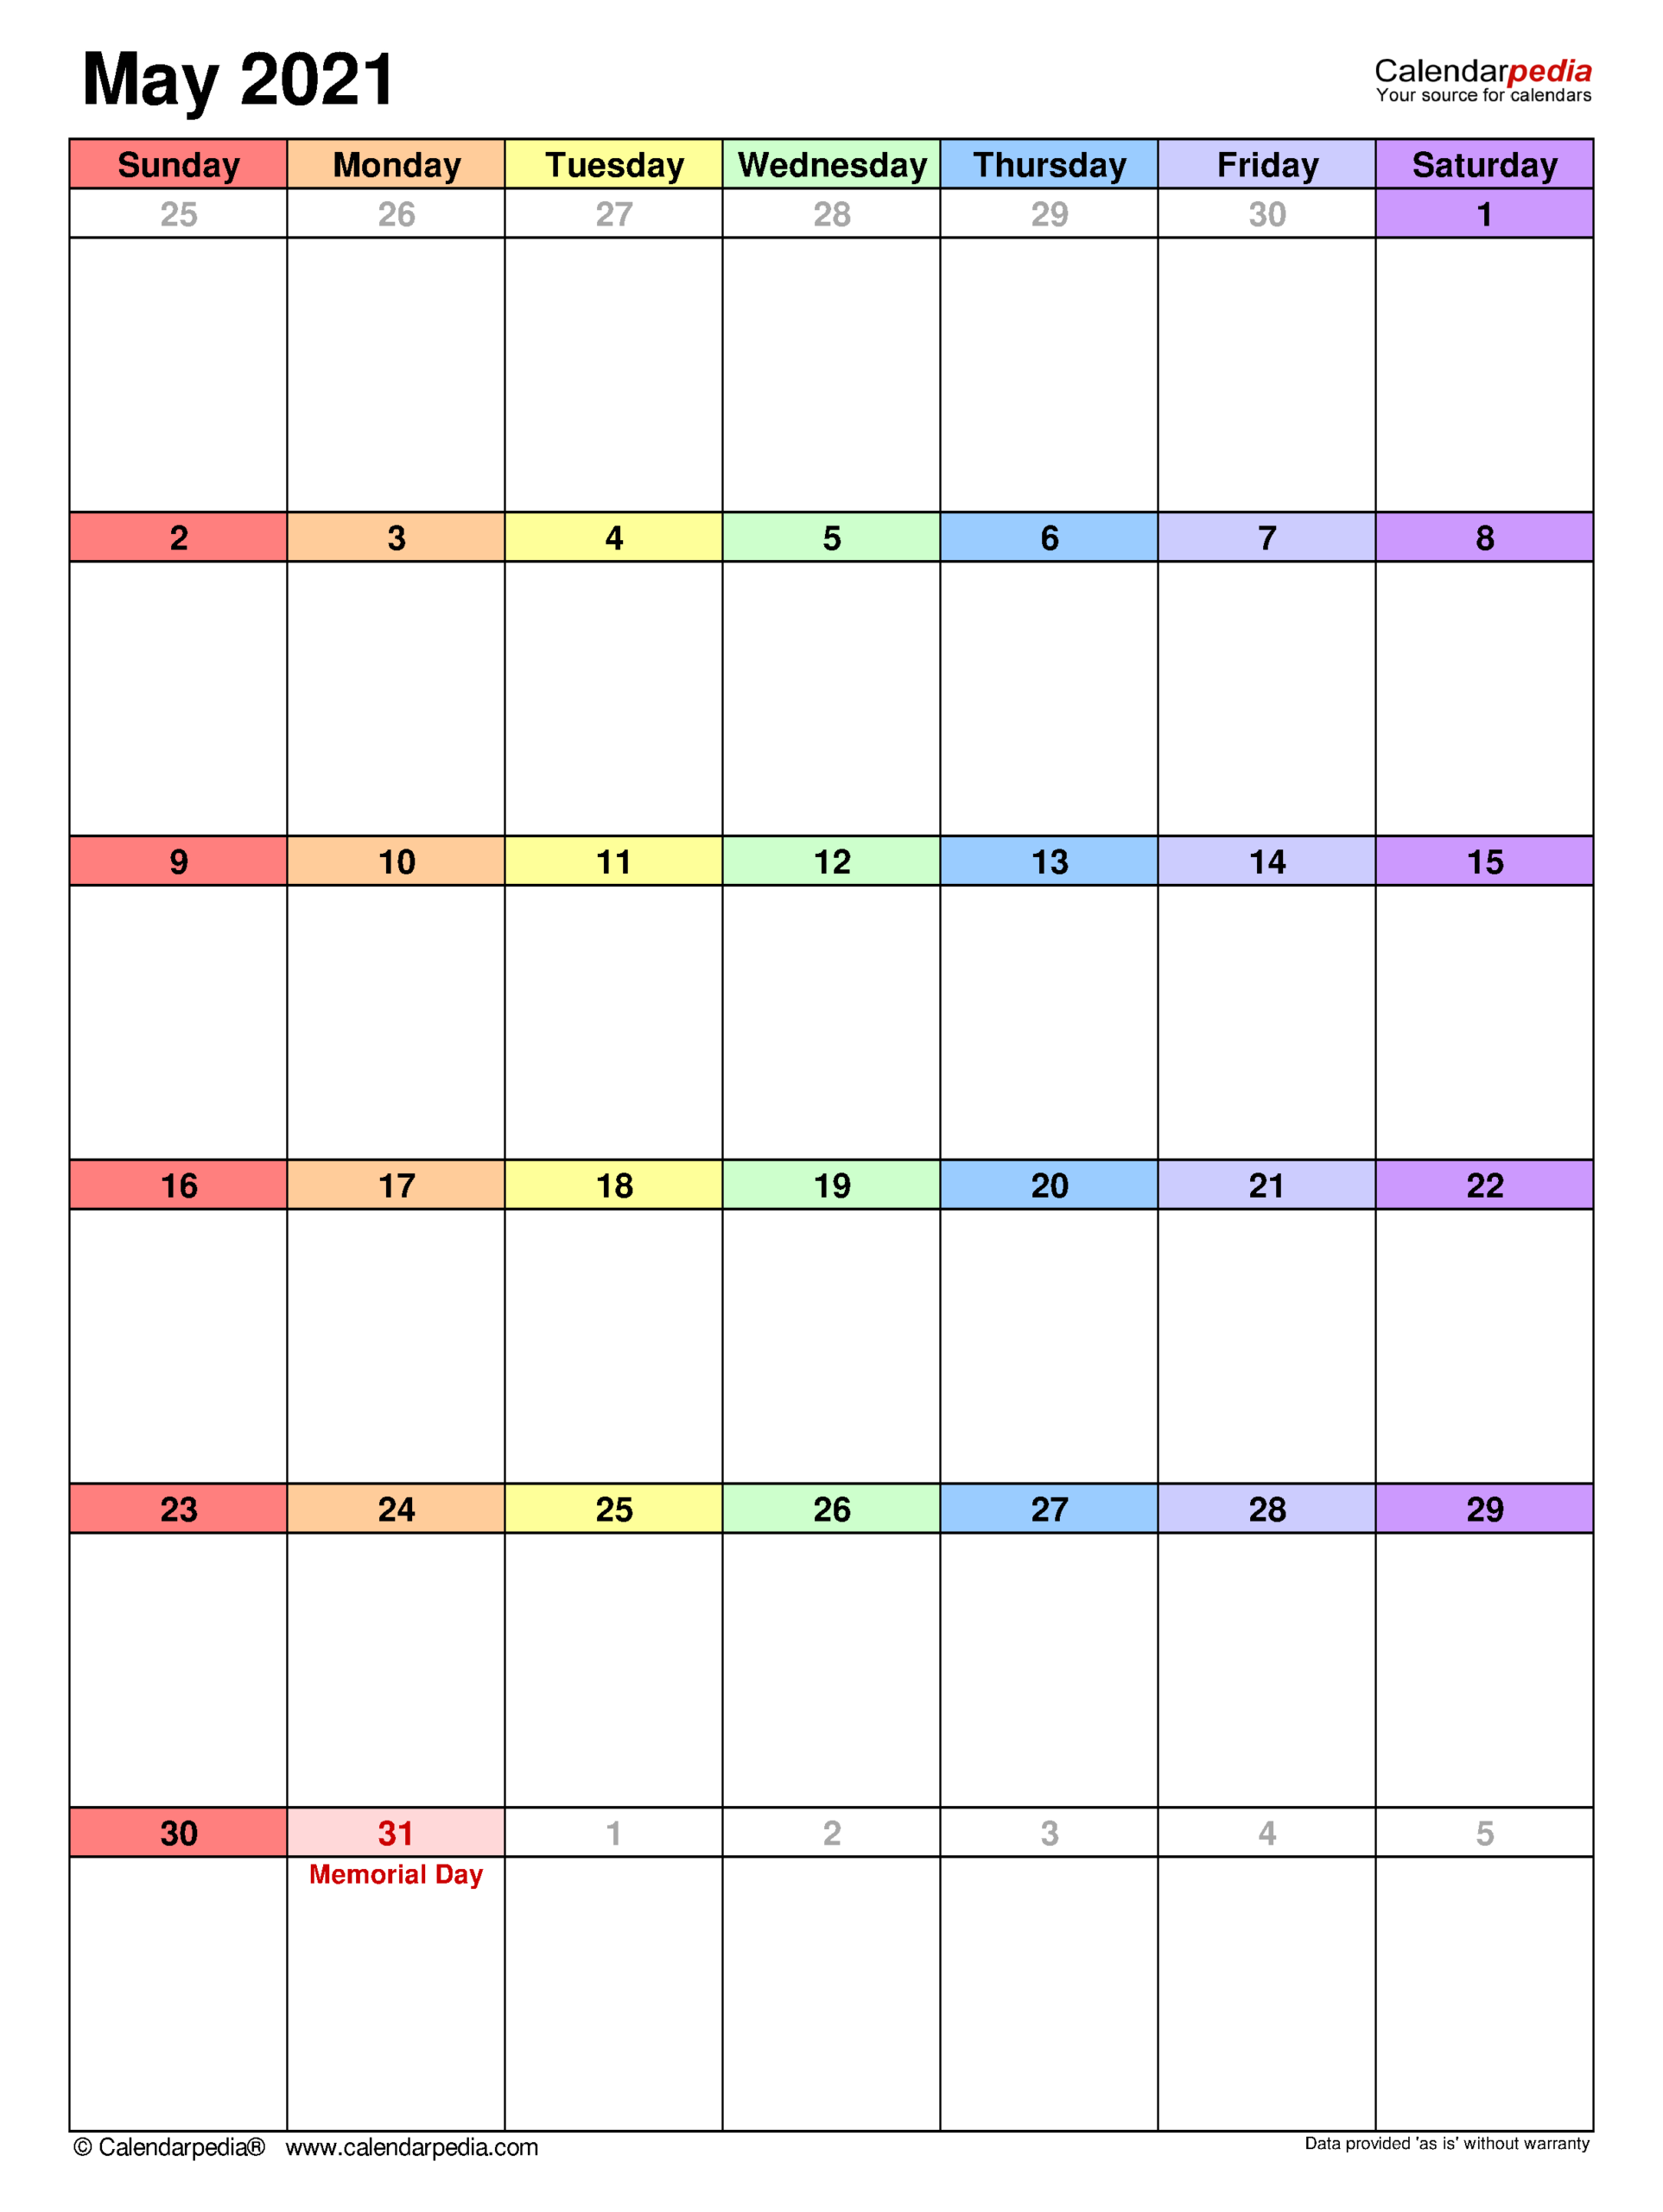 May 2021 Calendar | Templates For Word, Excel And Pdf regarding Shift Calendar 2021